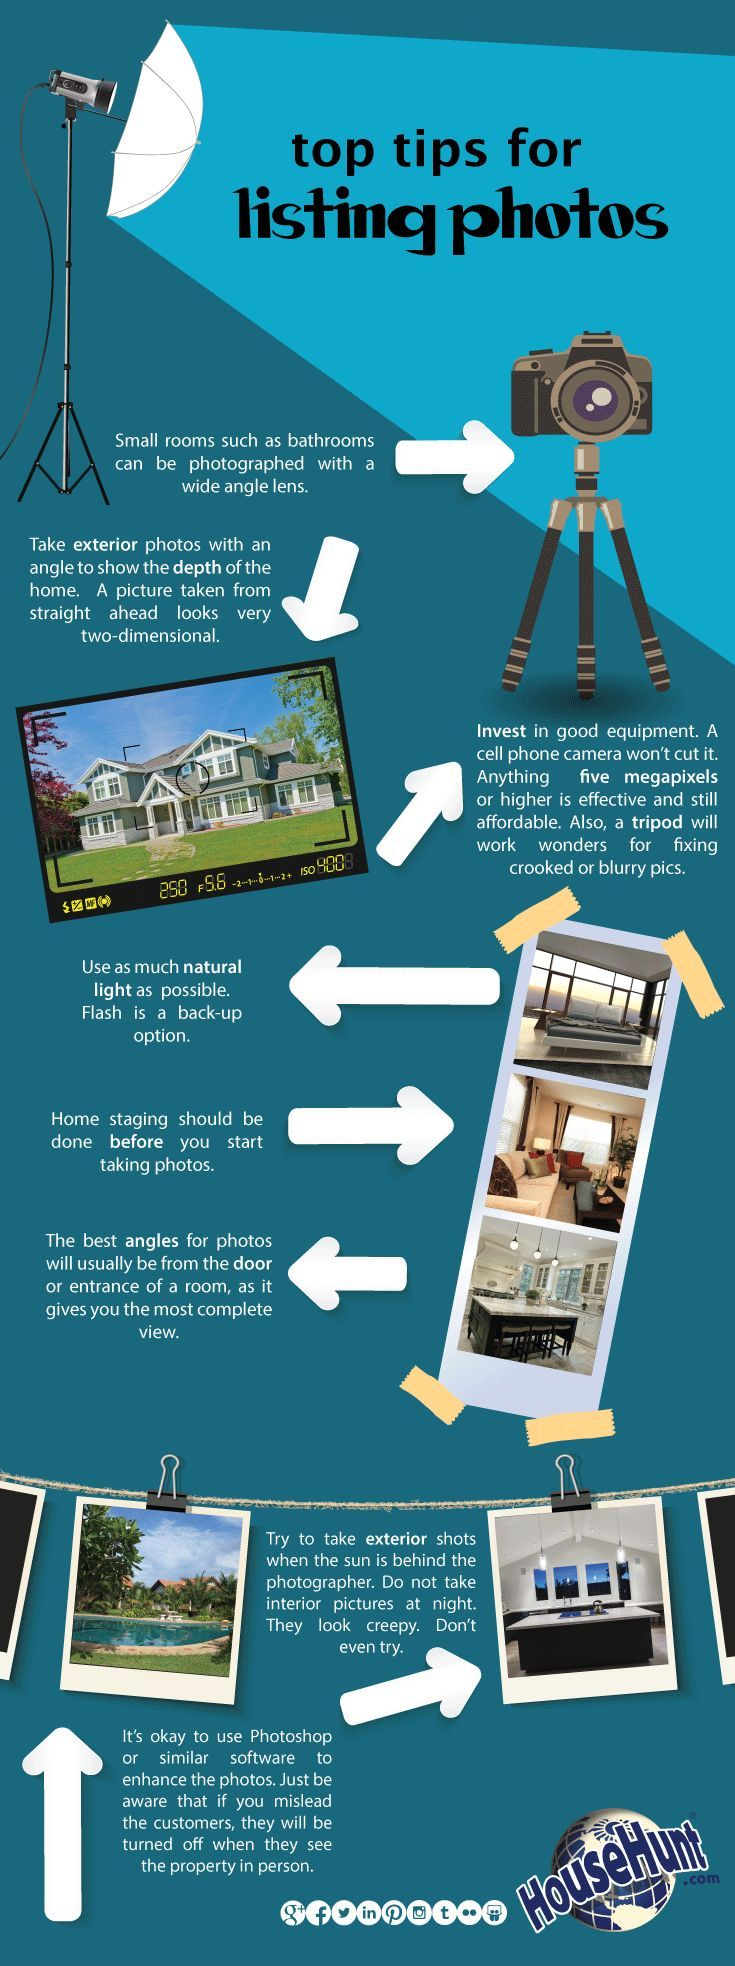 Top 8 Tips for Listing Photos #Infographic : http://www.blog.househuntnetwork.com/top-tips-for-listing-photos/